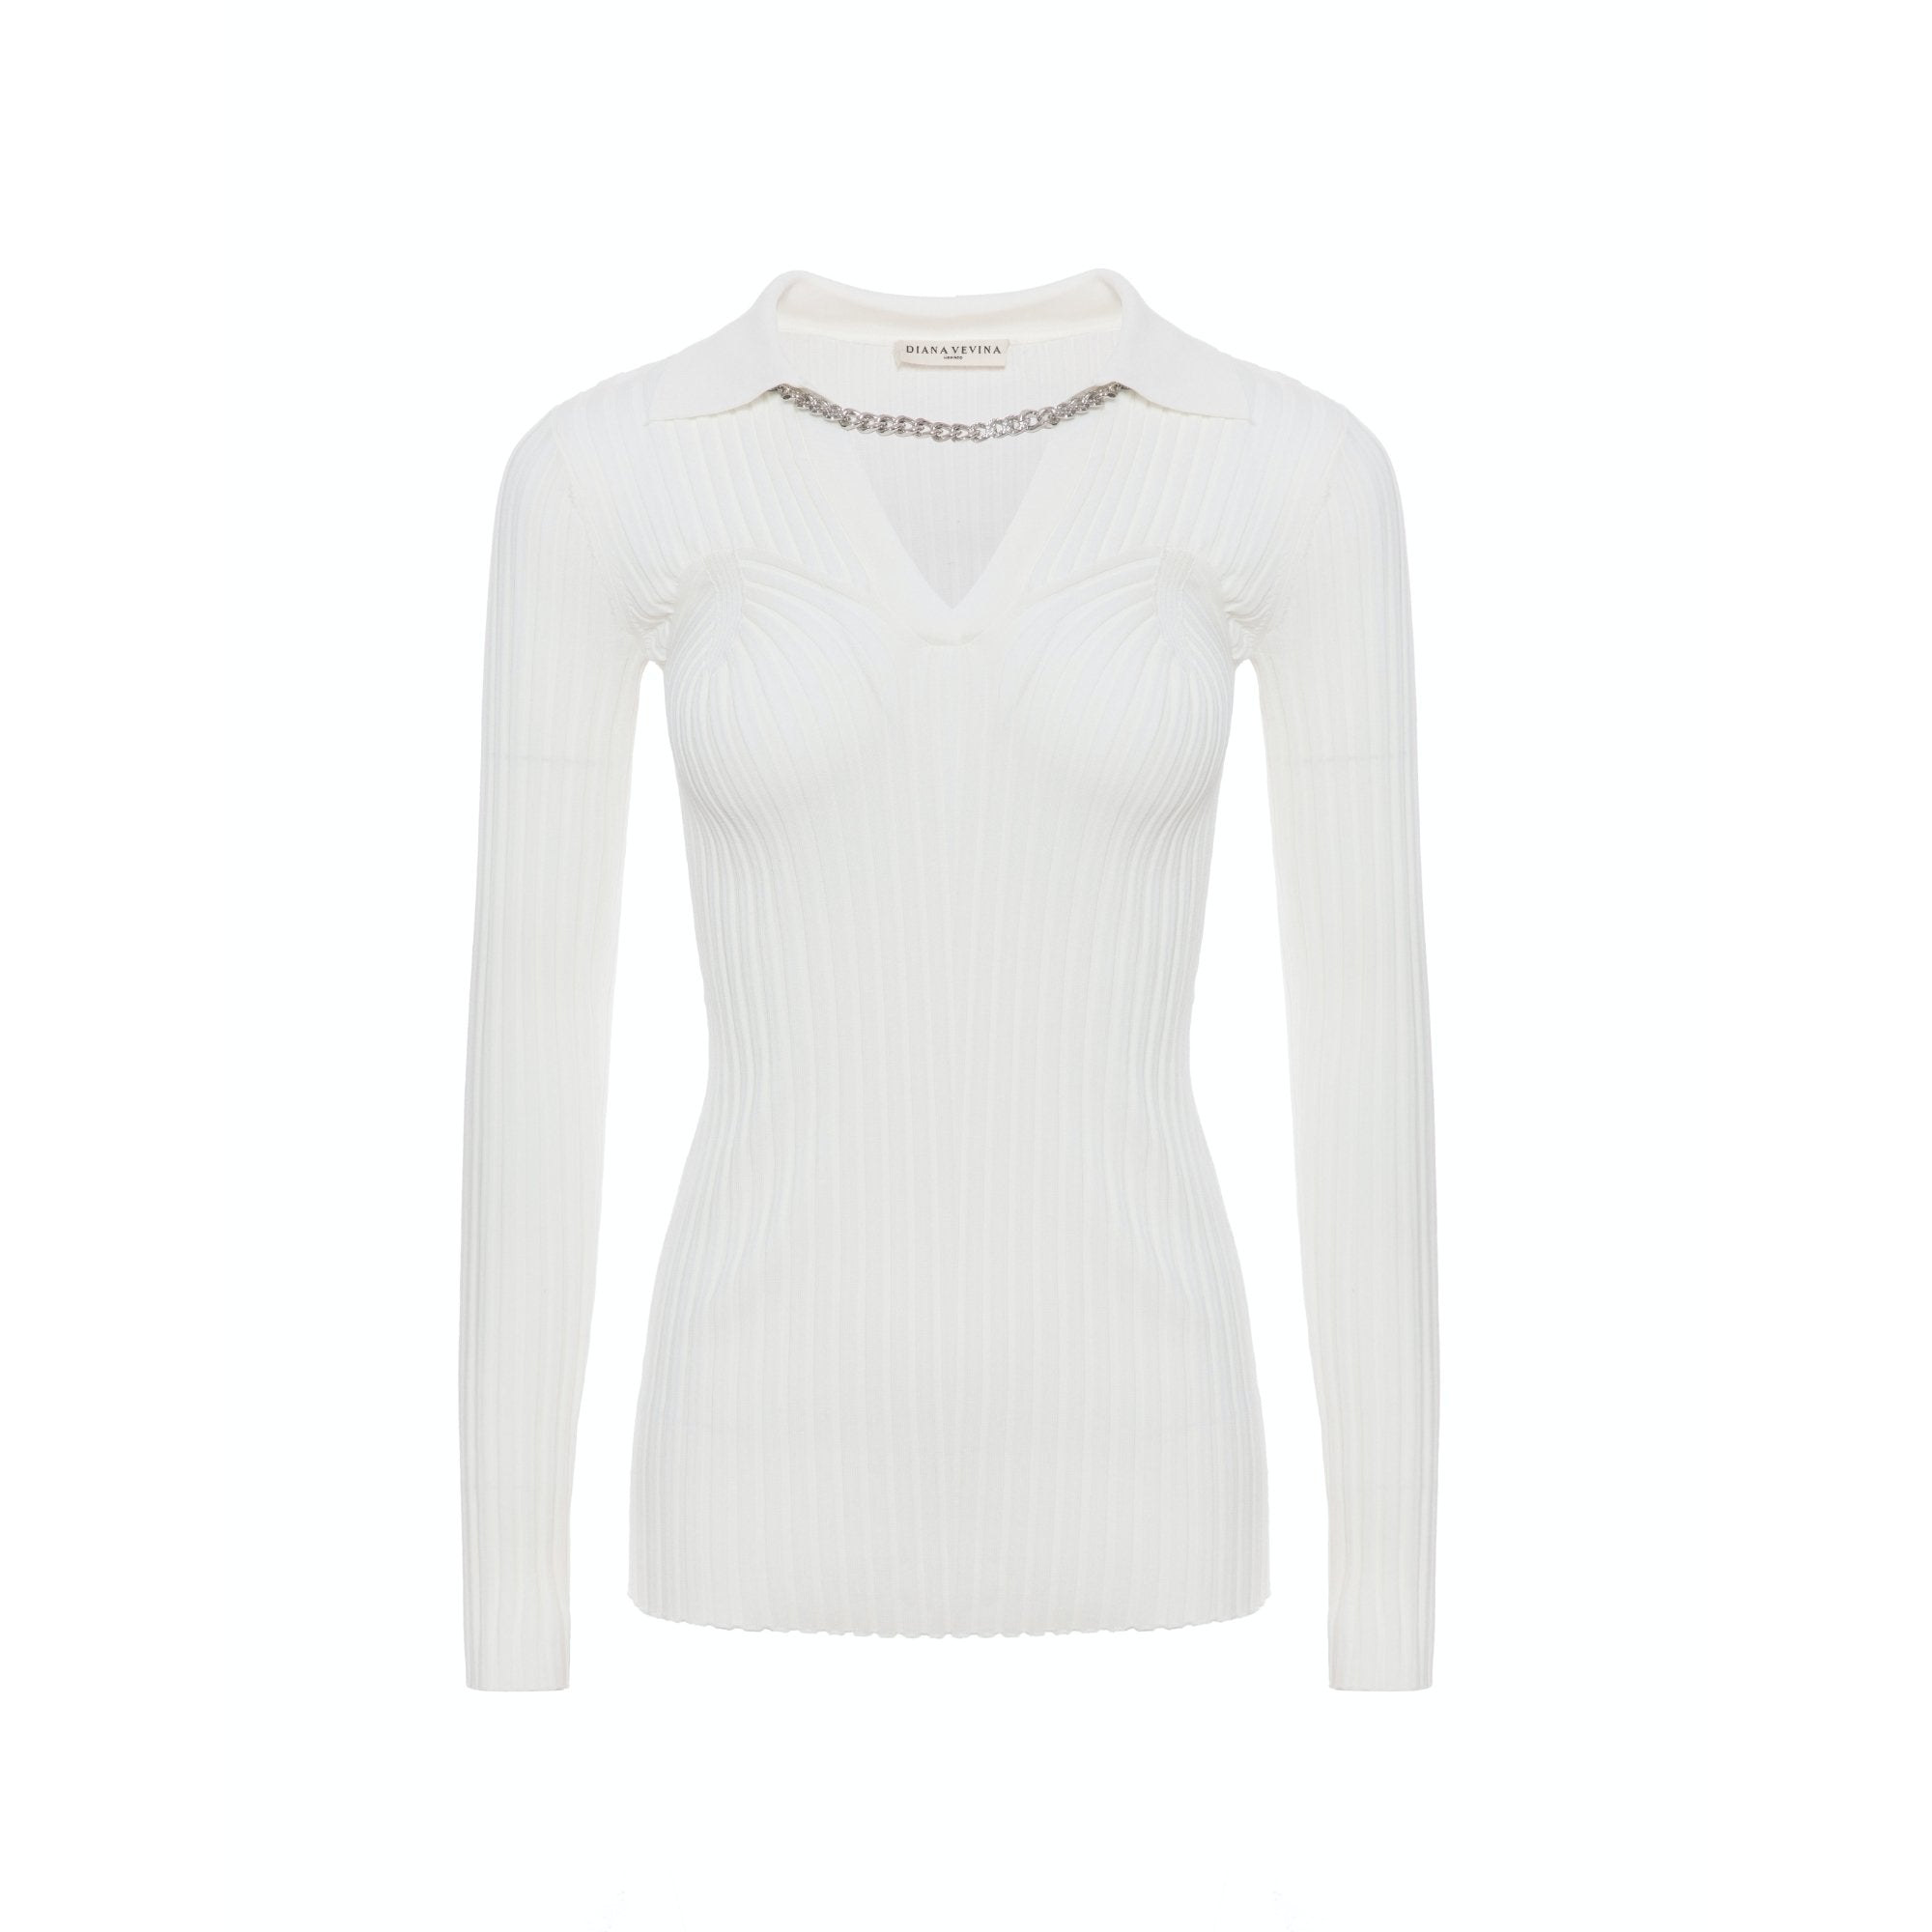 DIANA VEVINA V-Neck Chain Sweatshirt White | MADA IN CHINA